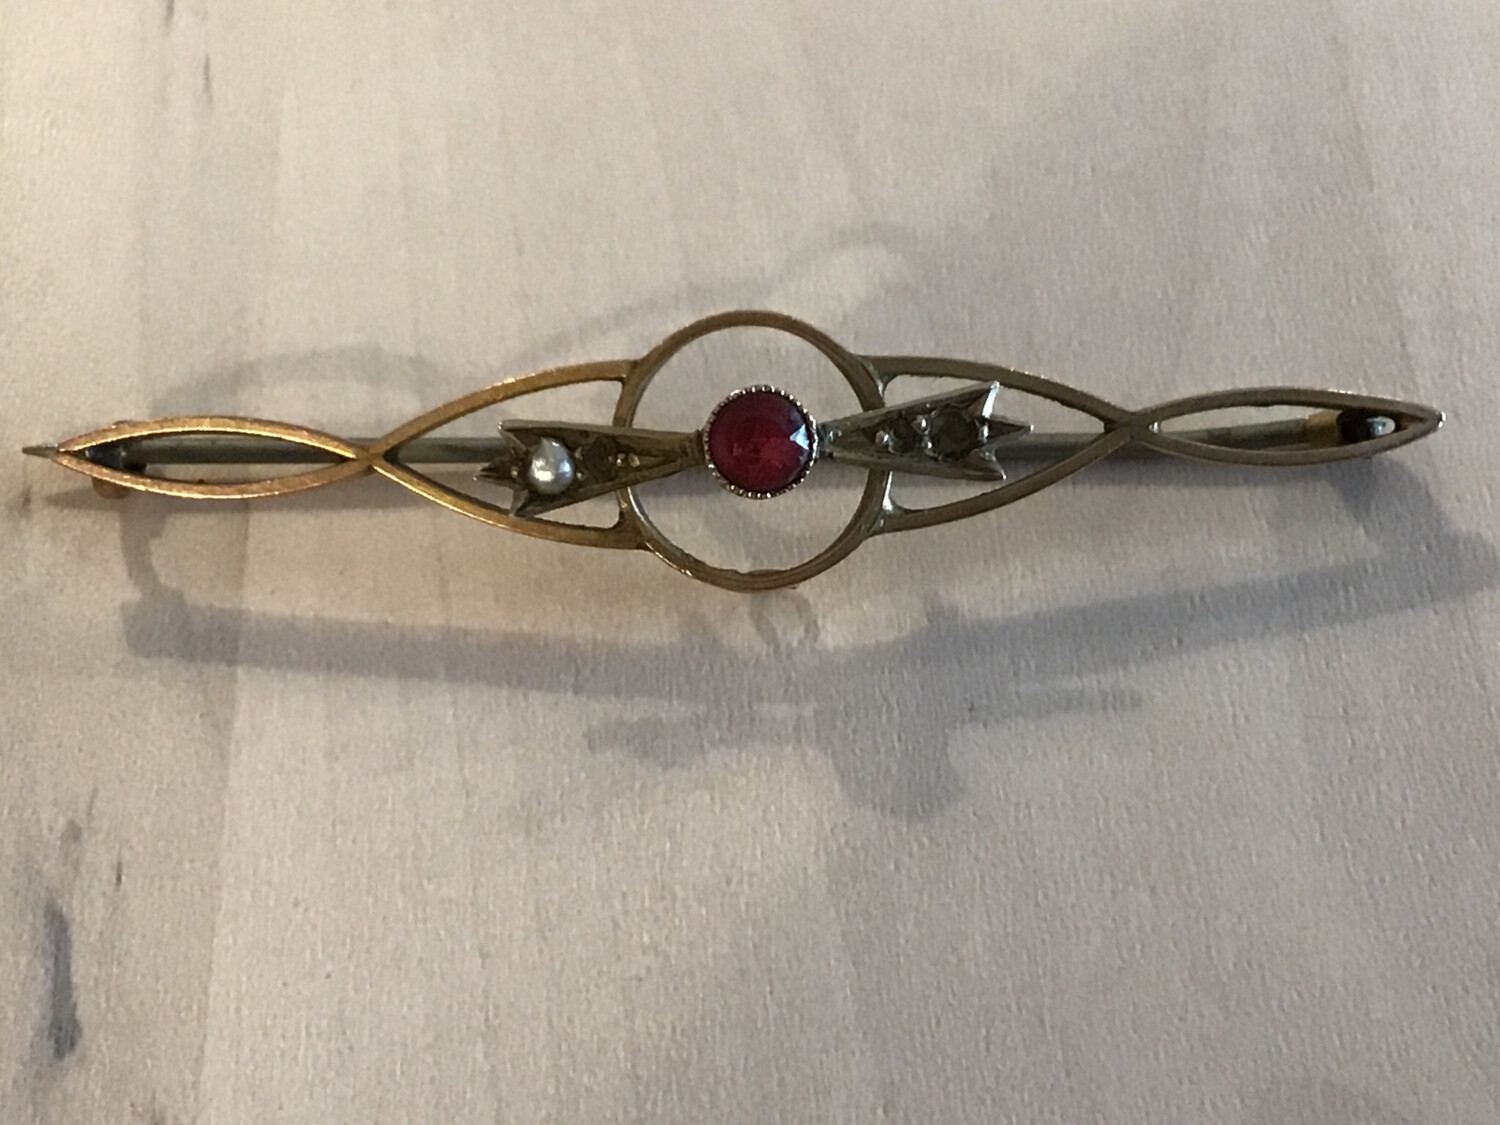 9ct Gold Victorian Brooch With red Semi-precious Stone (missing Smaller Stones)